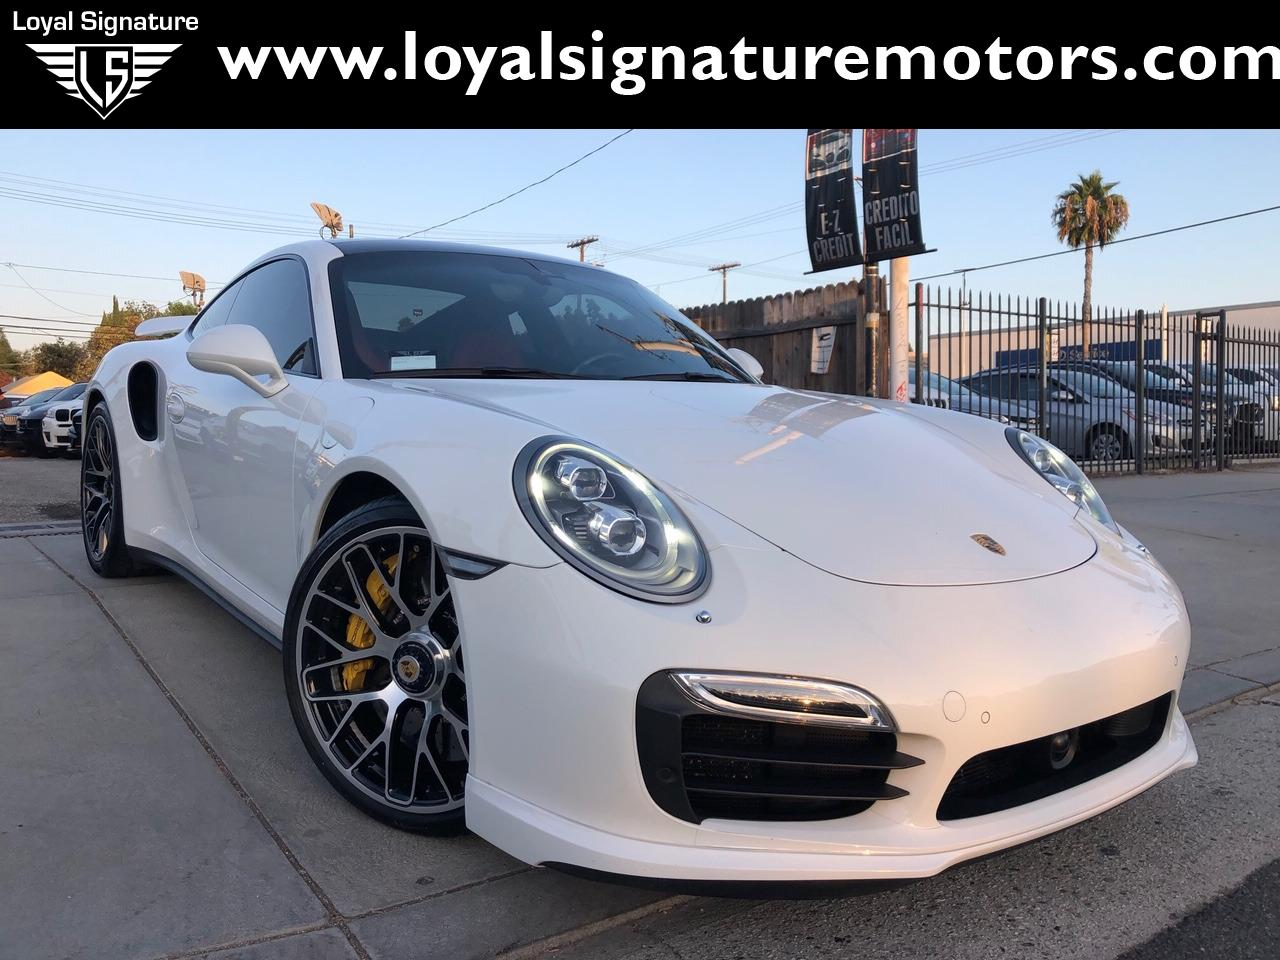 Used 2014 Porsche 911 Turbo S | Van Nuys, CA